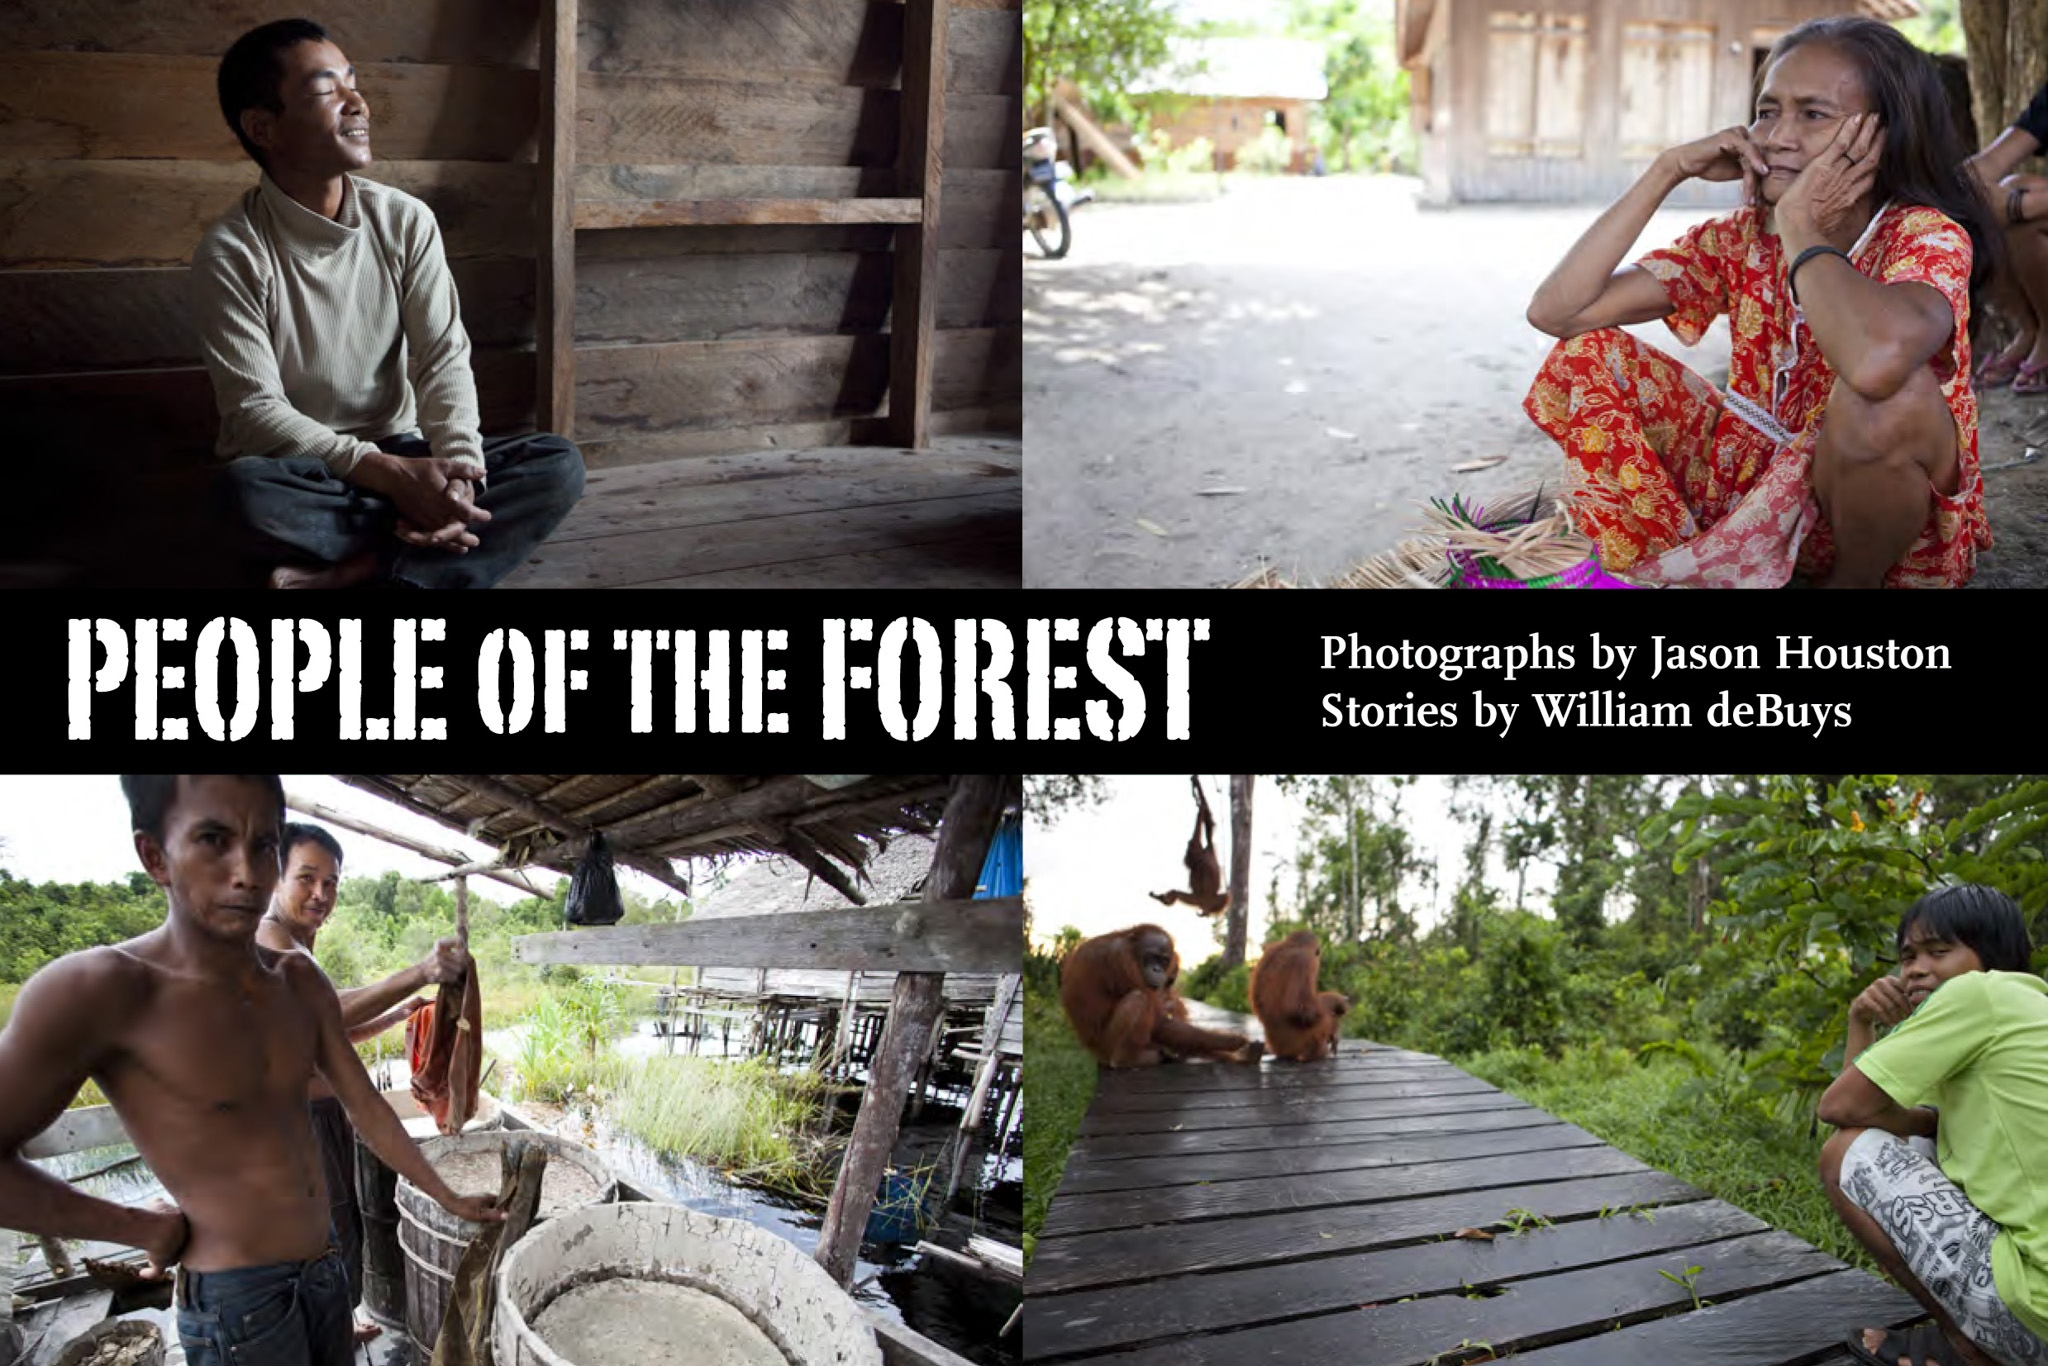 Art and Documentary Photography - Loading JHOUS 01 People of the Forest.jpg